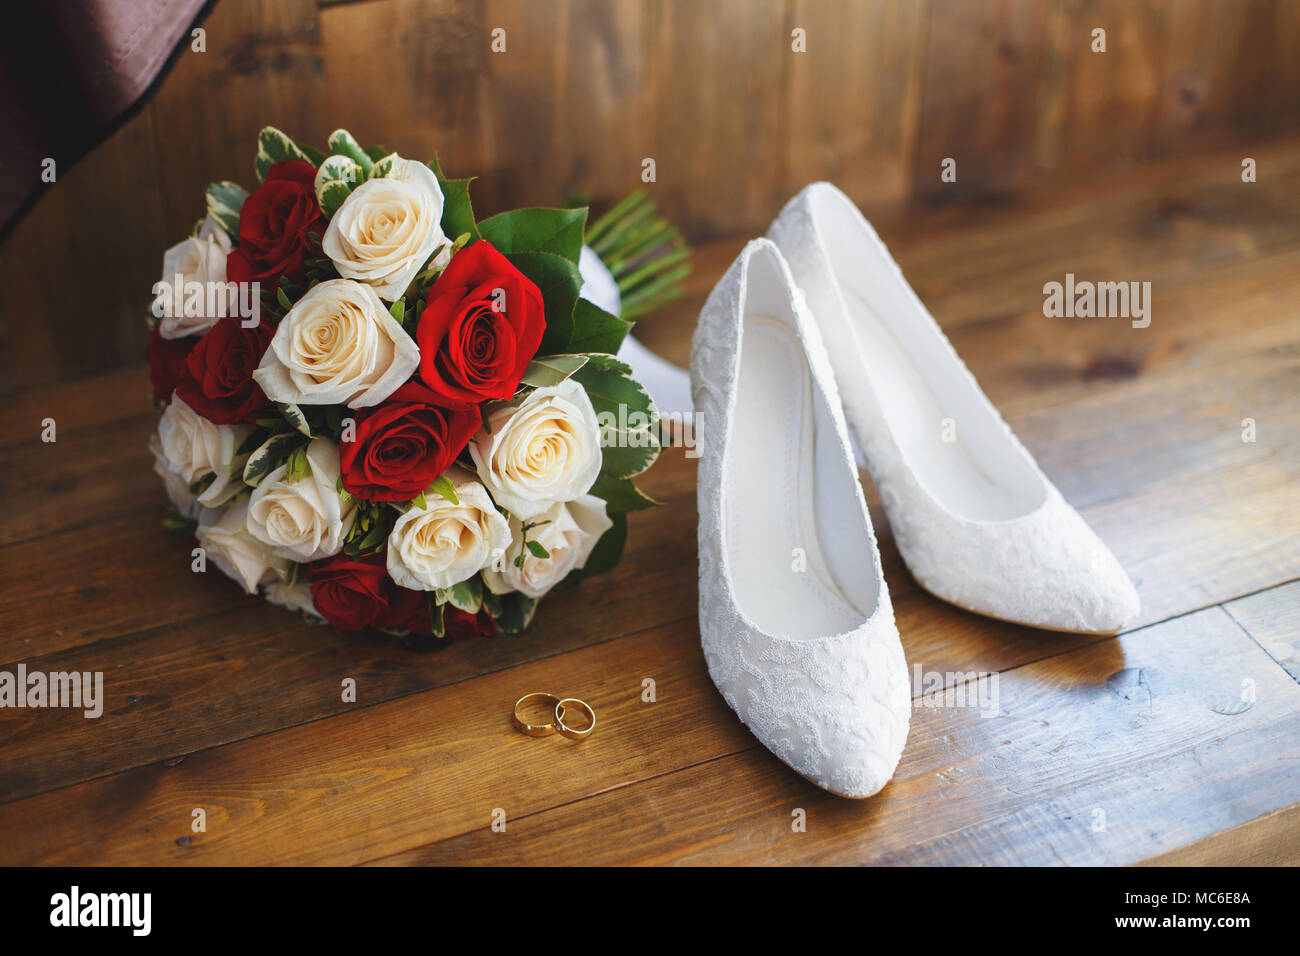 Wedding Shoes And Bouquet Of Red And White Roses On Wooden